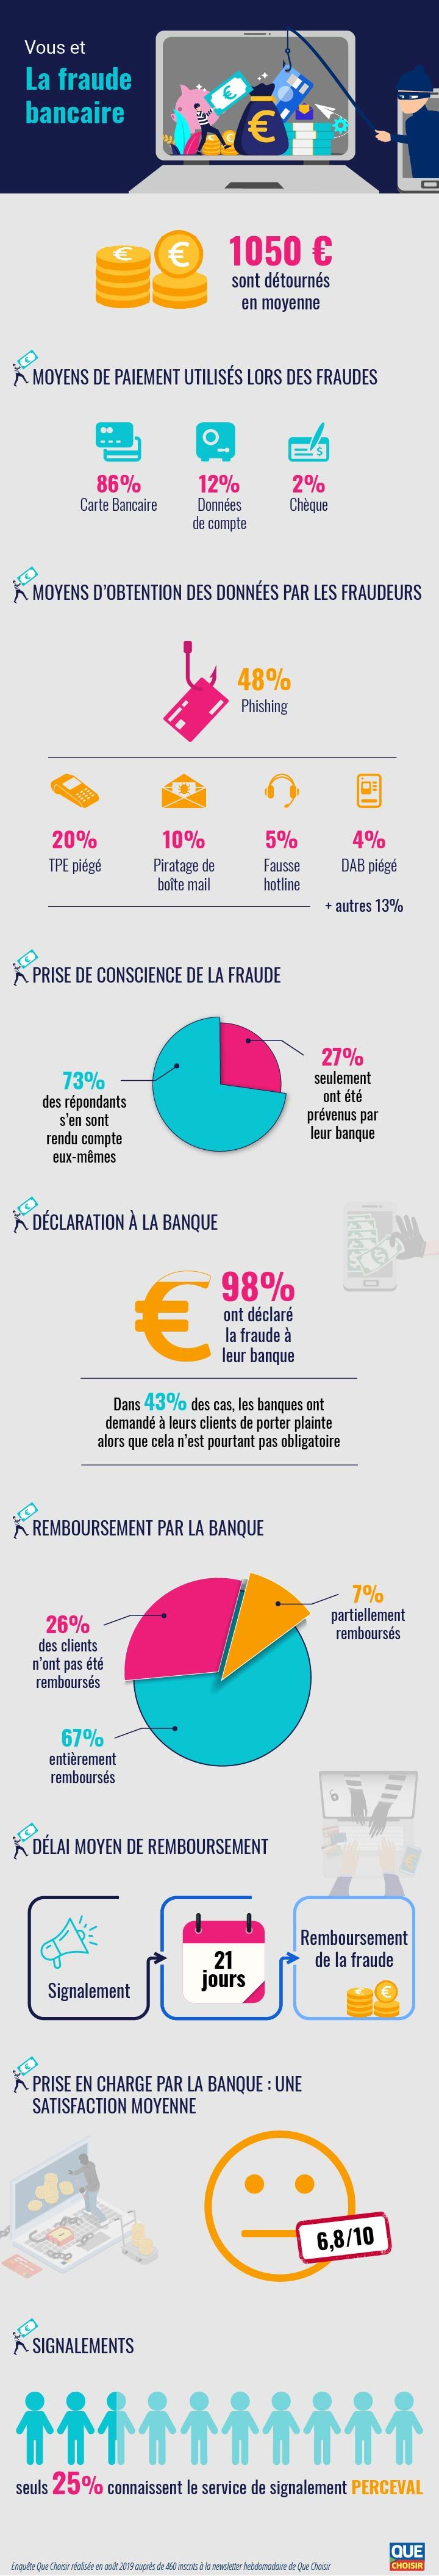 infographie fraude bancaire